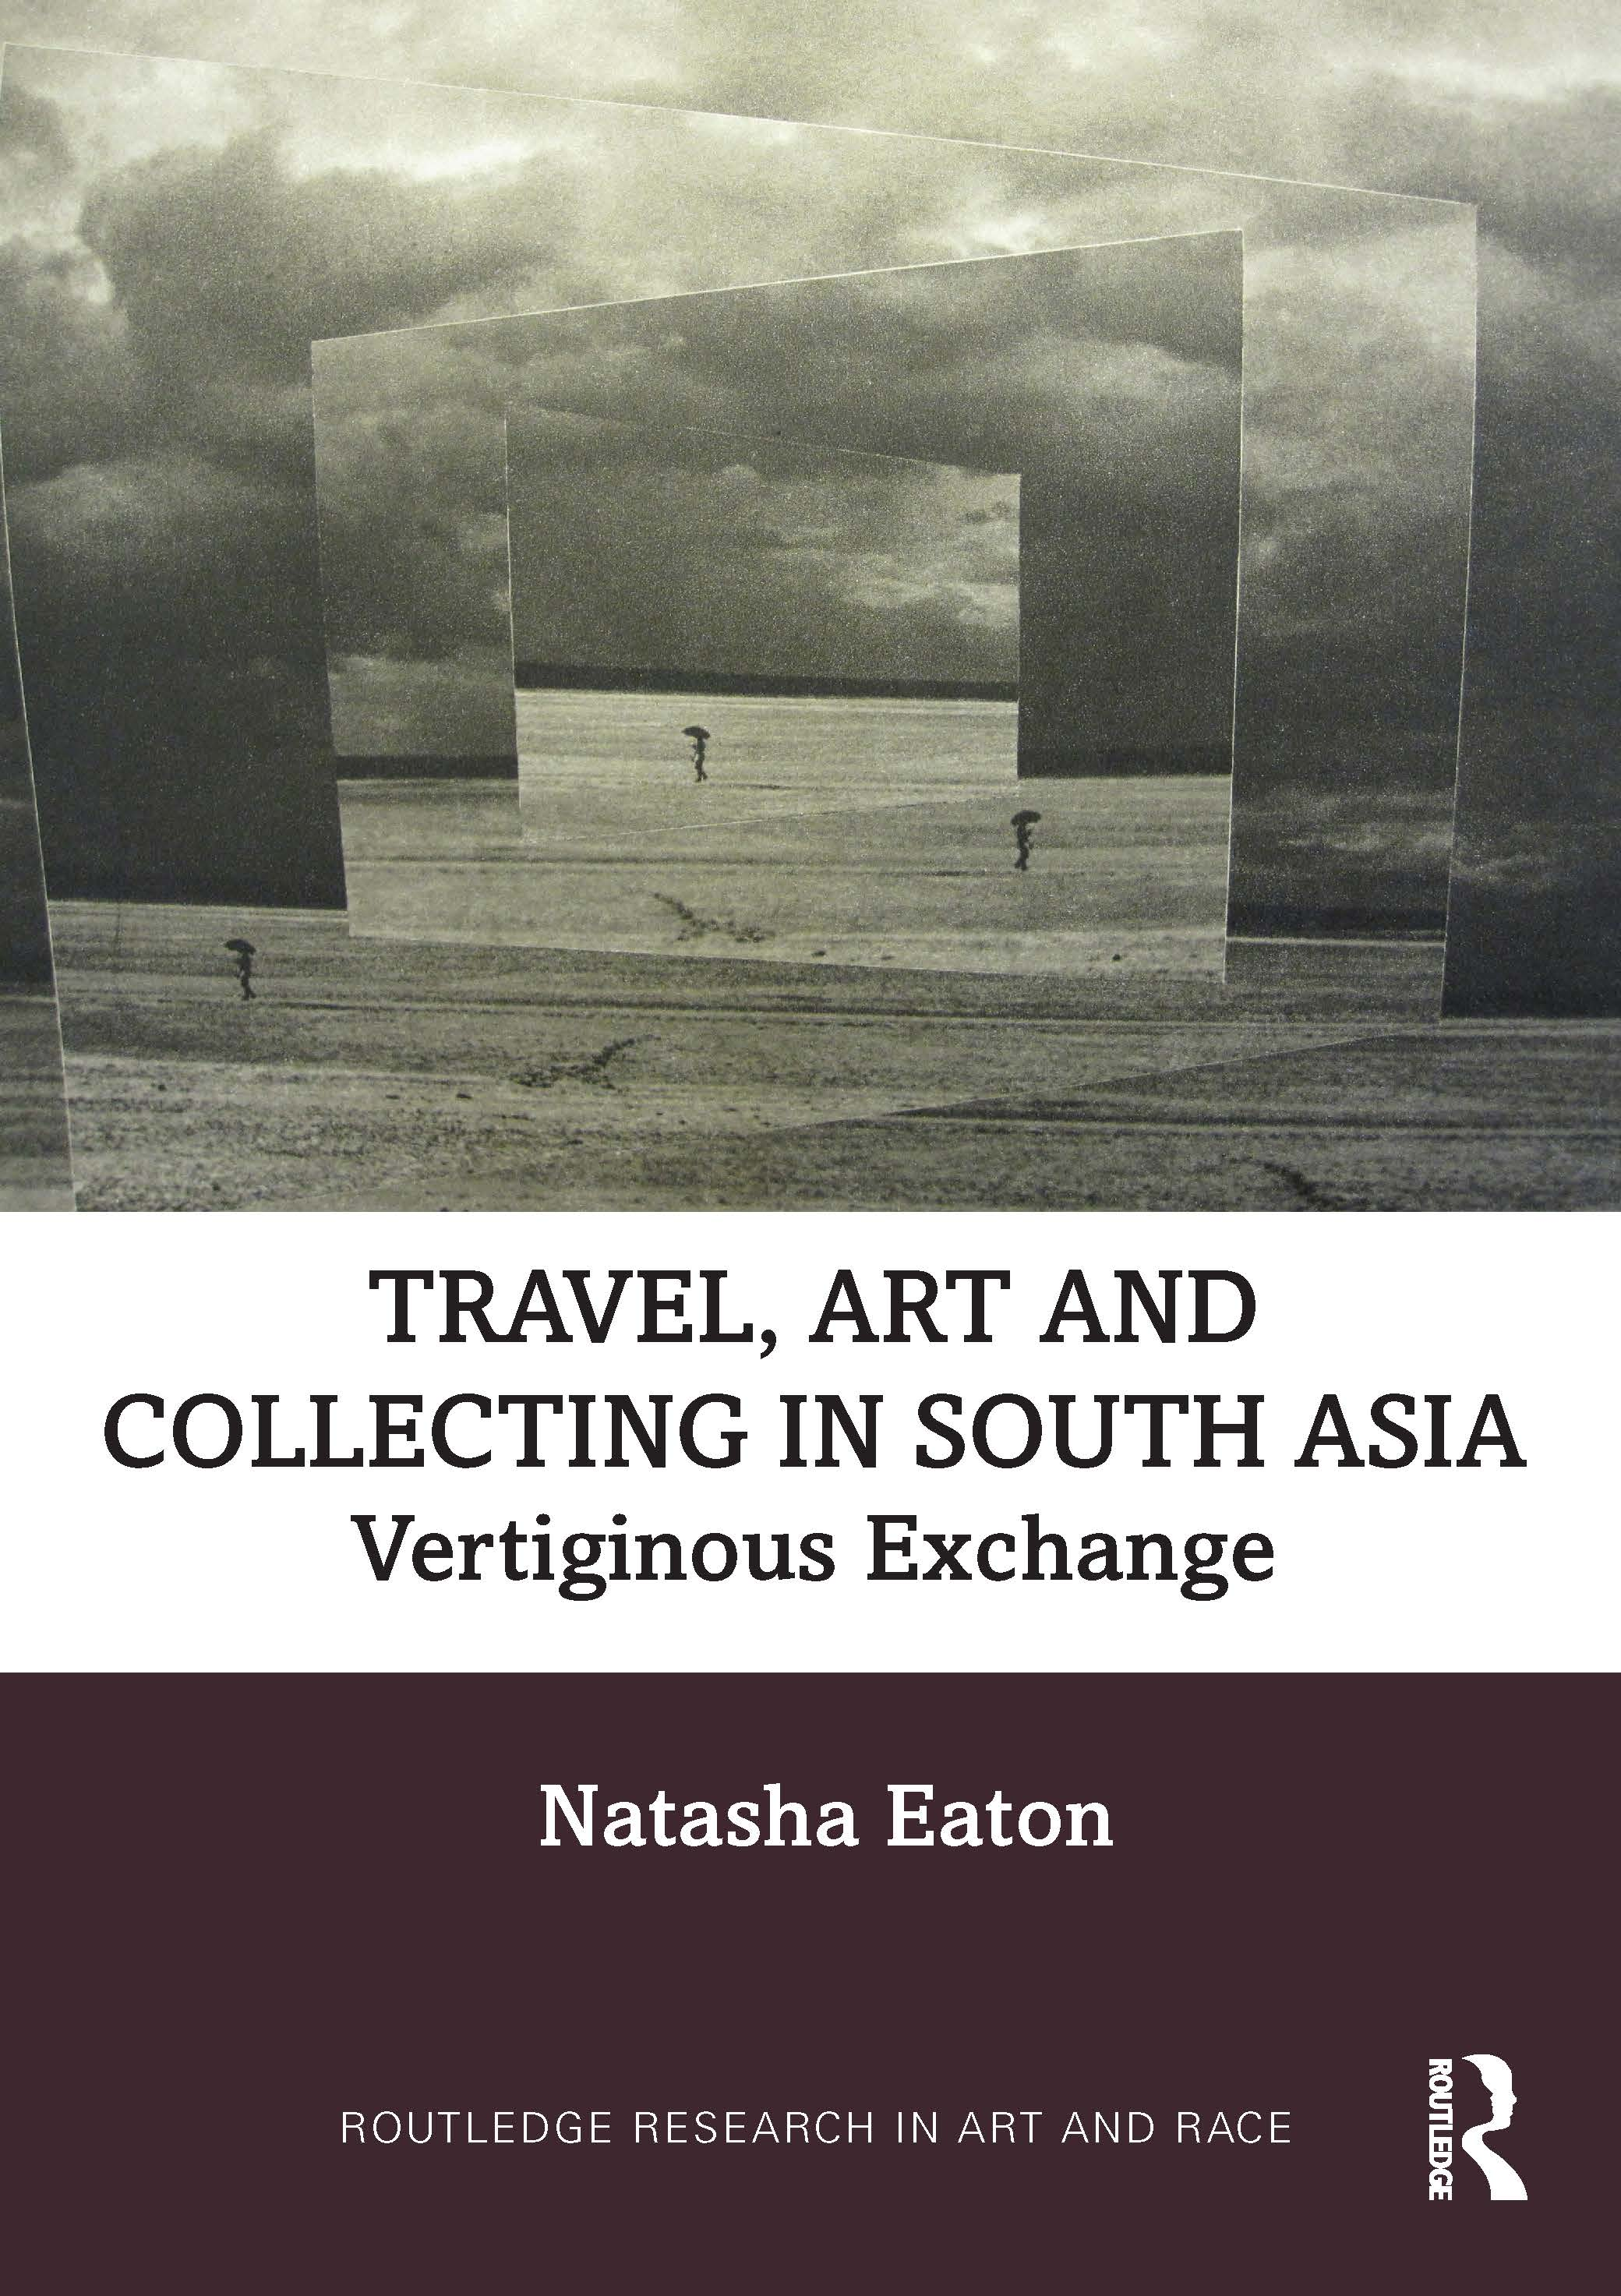 Travel, Art and Collecting in South Asia